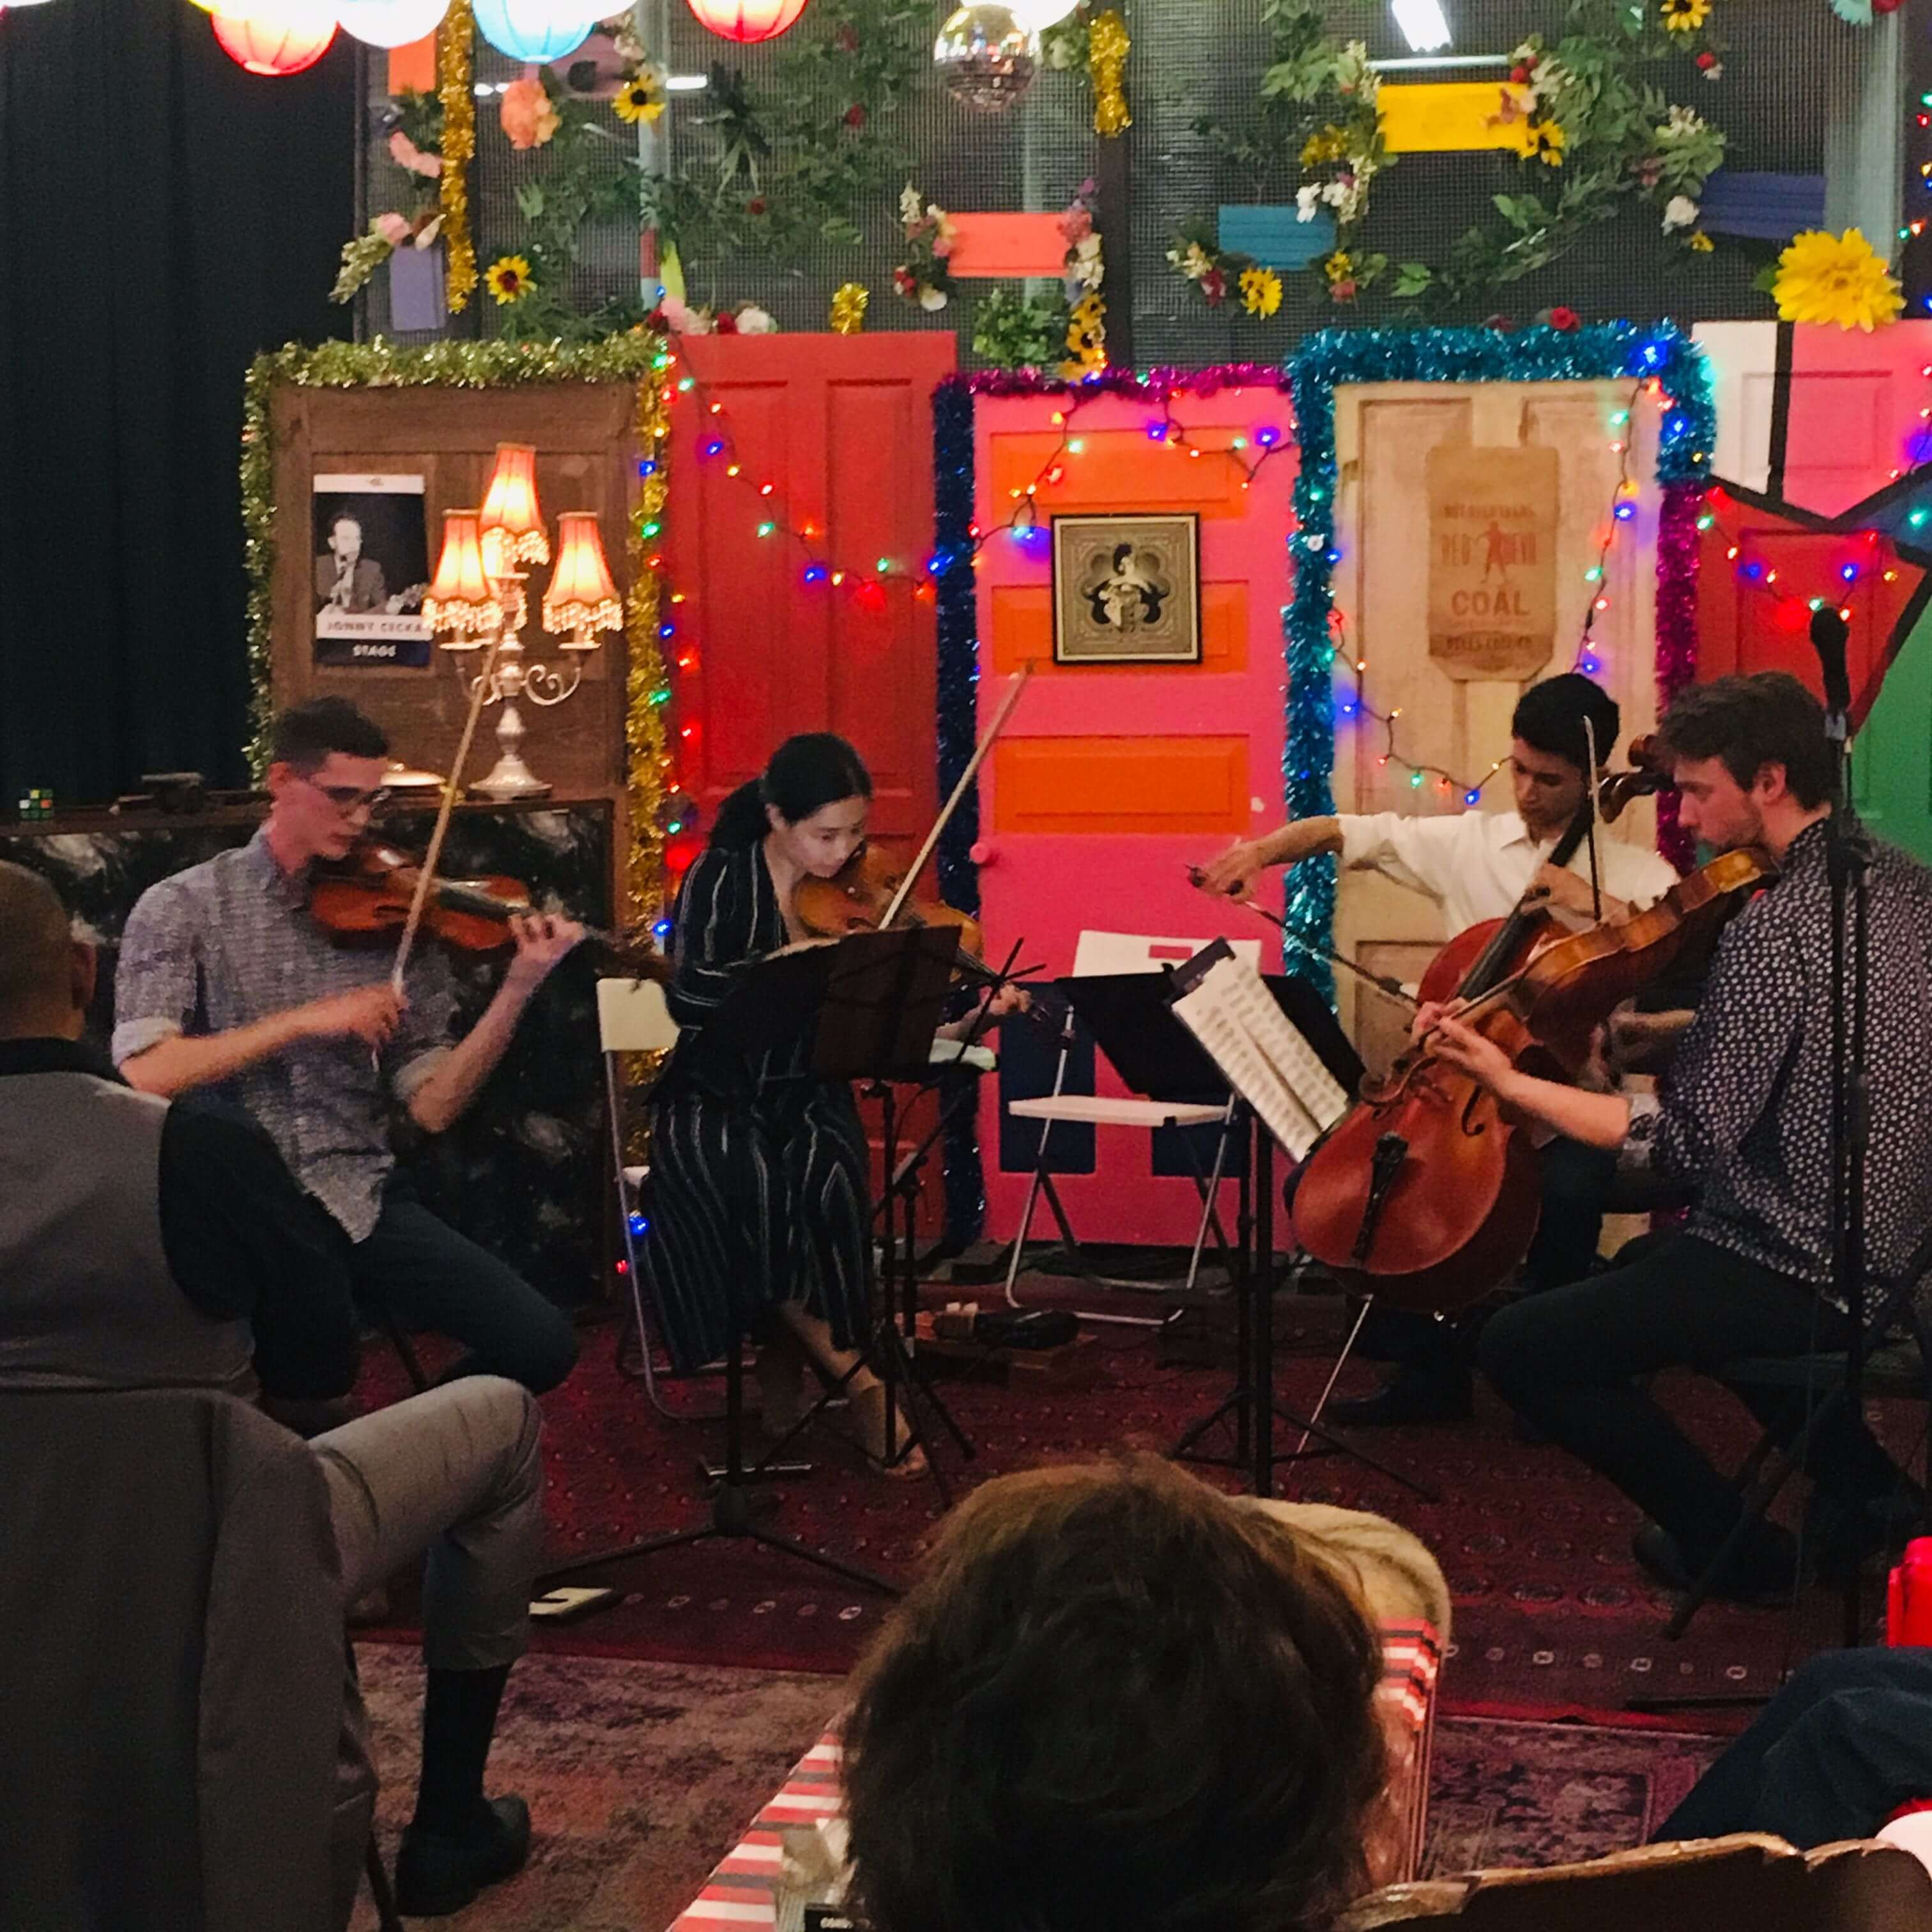 Classical performance in the Lunar Lounge